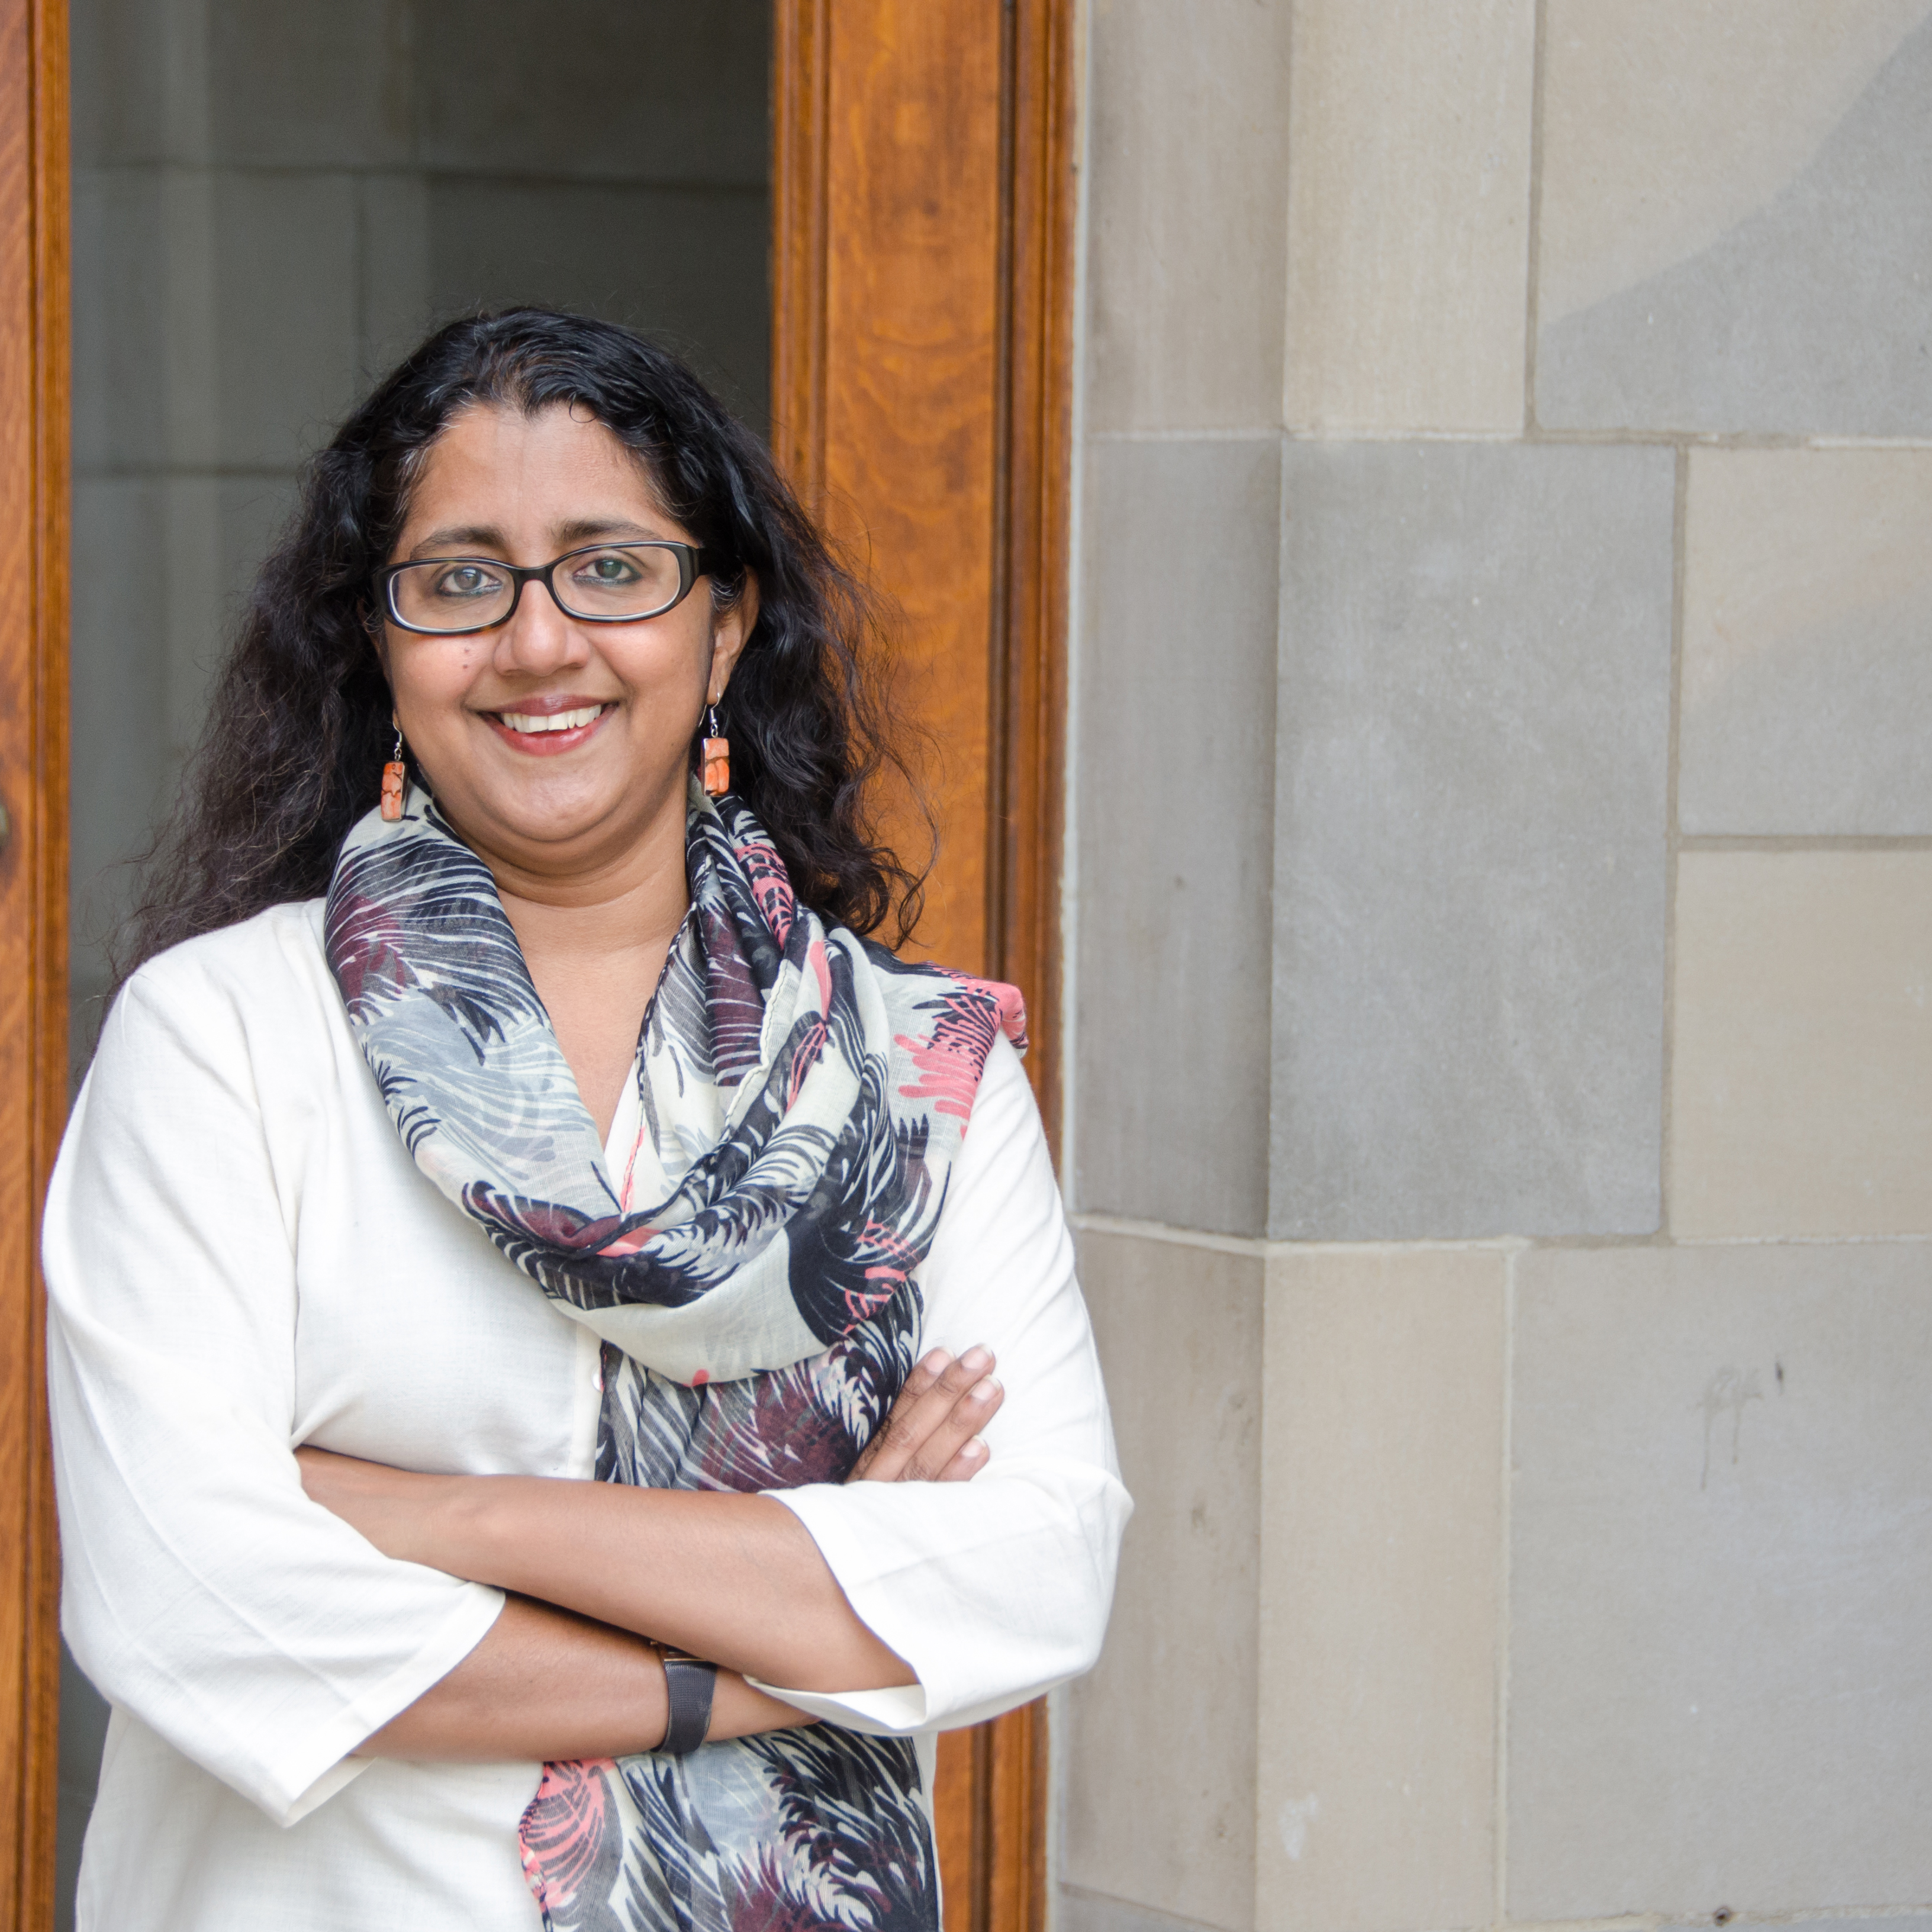 Profile photo of Radhika Parameswaran